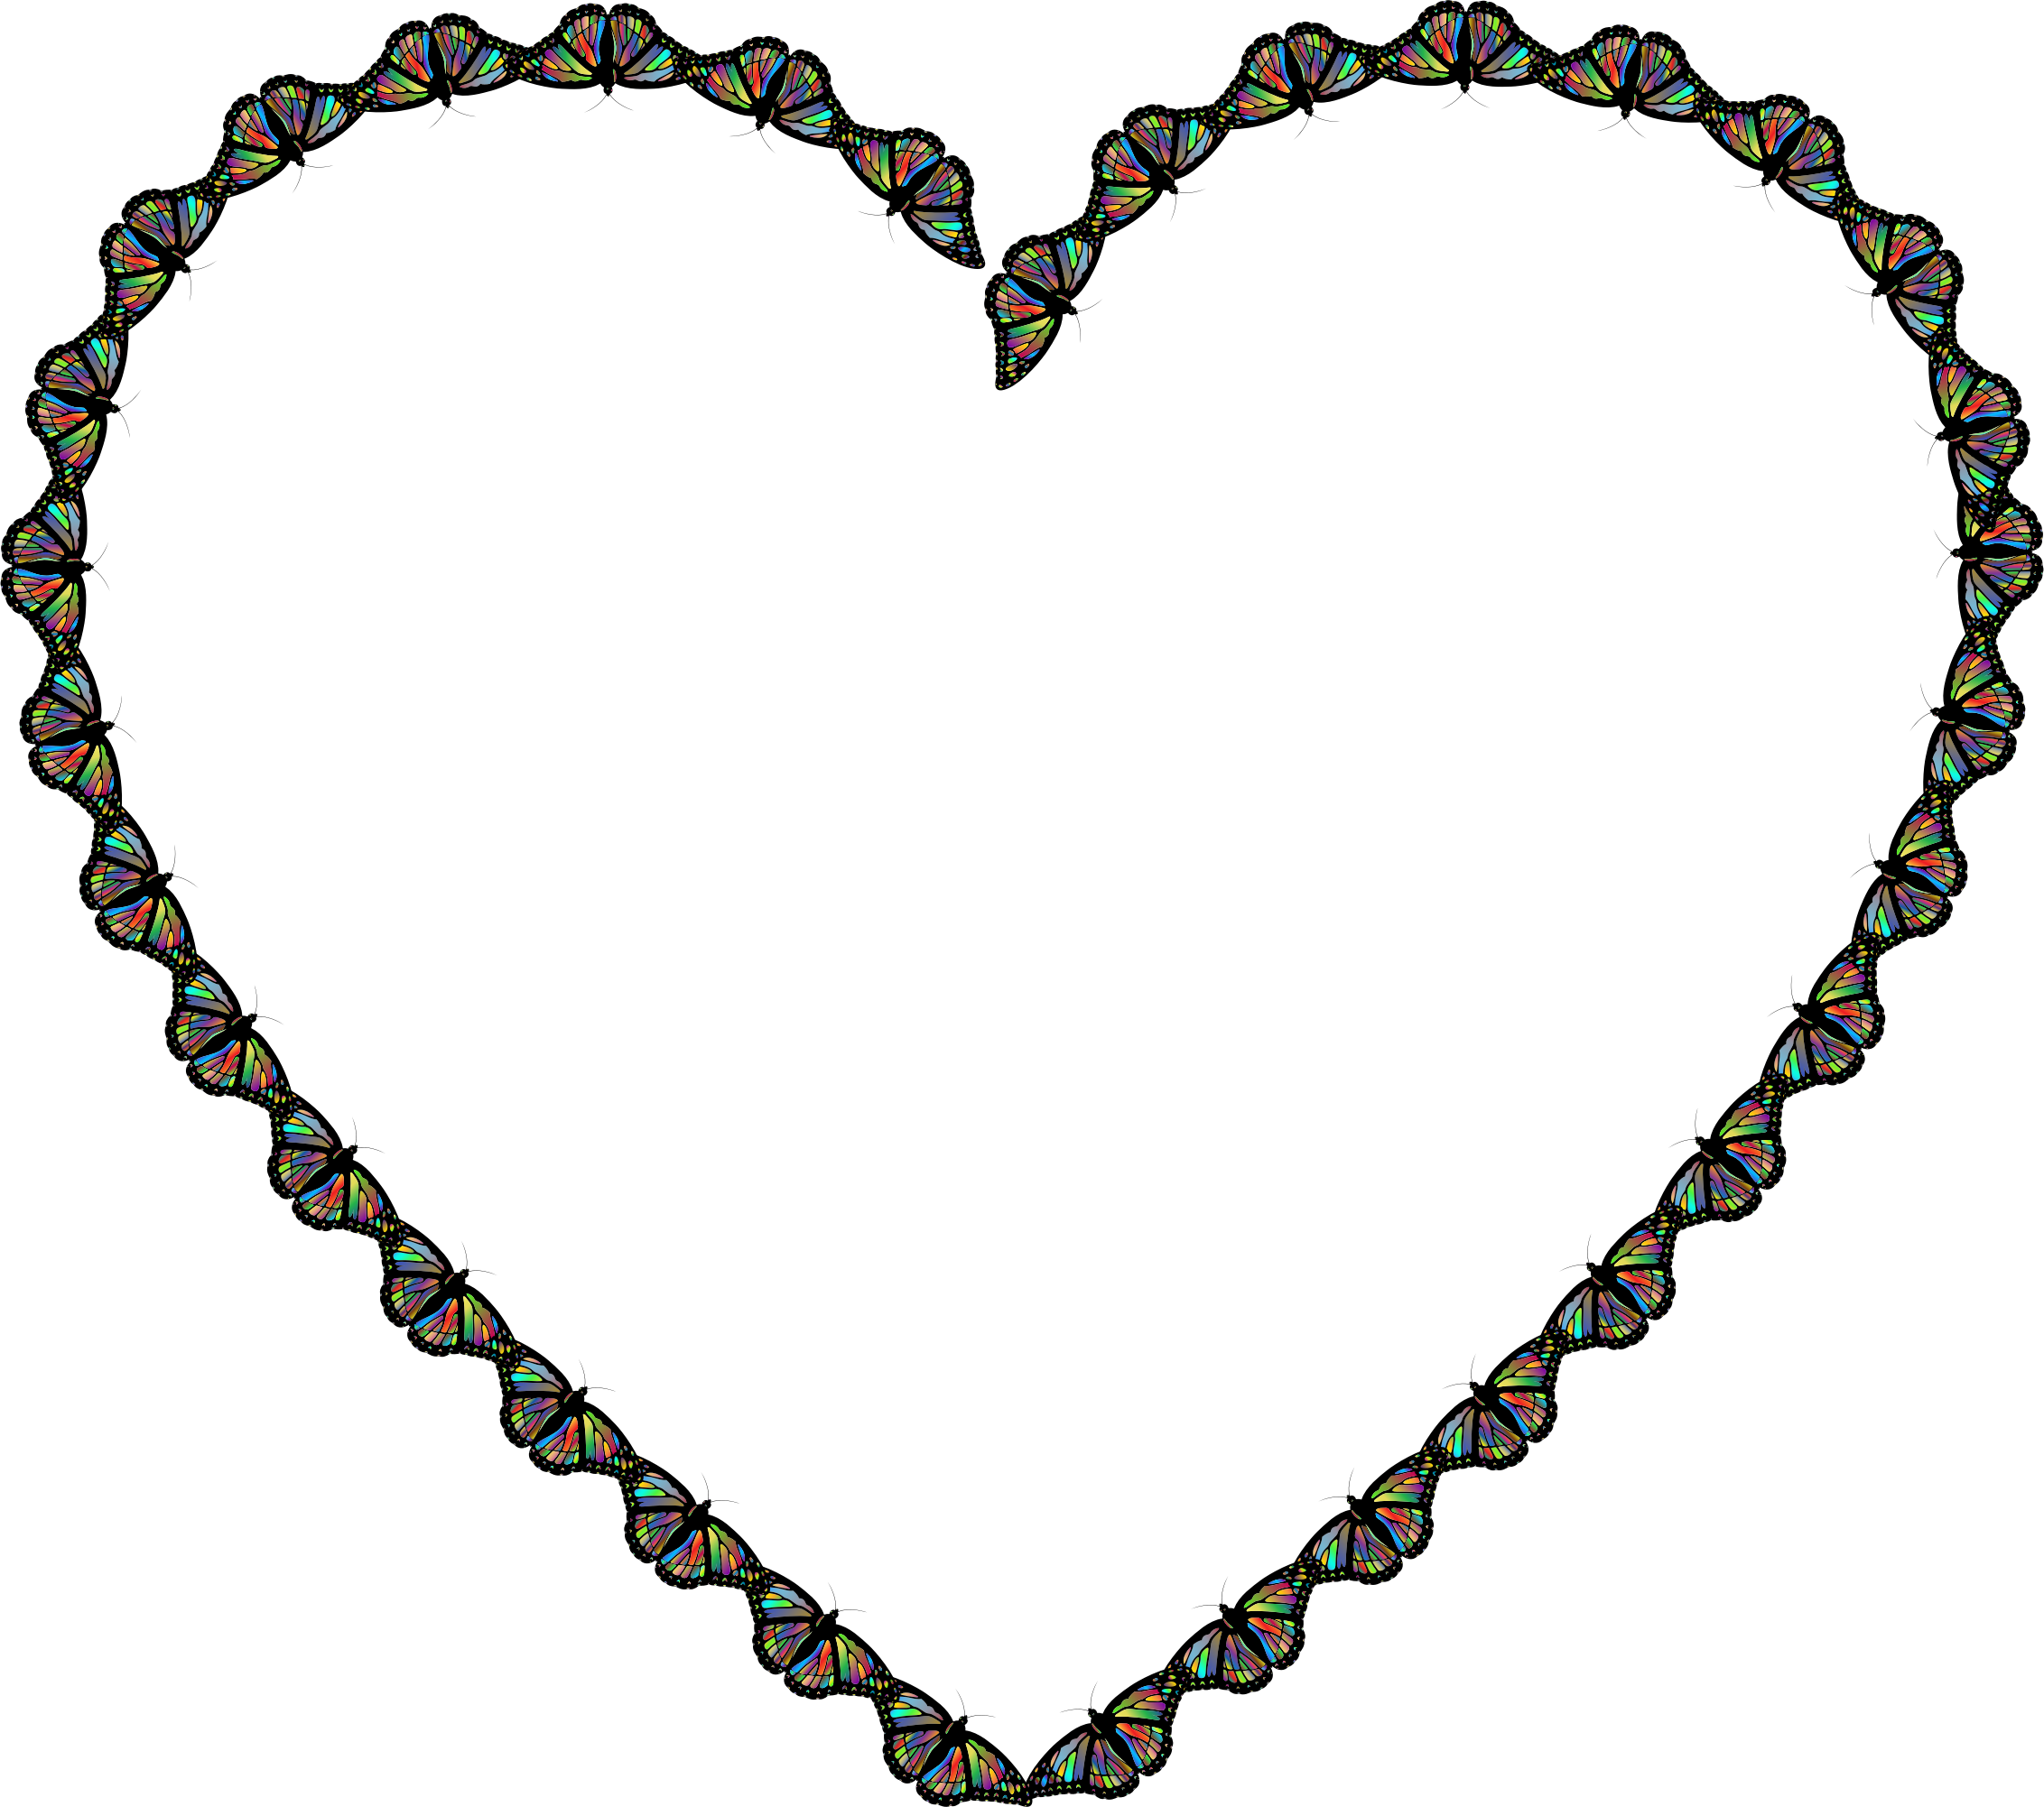 Heart butterfly clipart graphic royalty free stock Butterfly Heart Icons PNG - Free PNG and Icons Downloads graphic royalty free stock